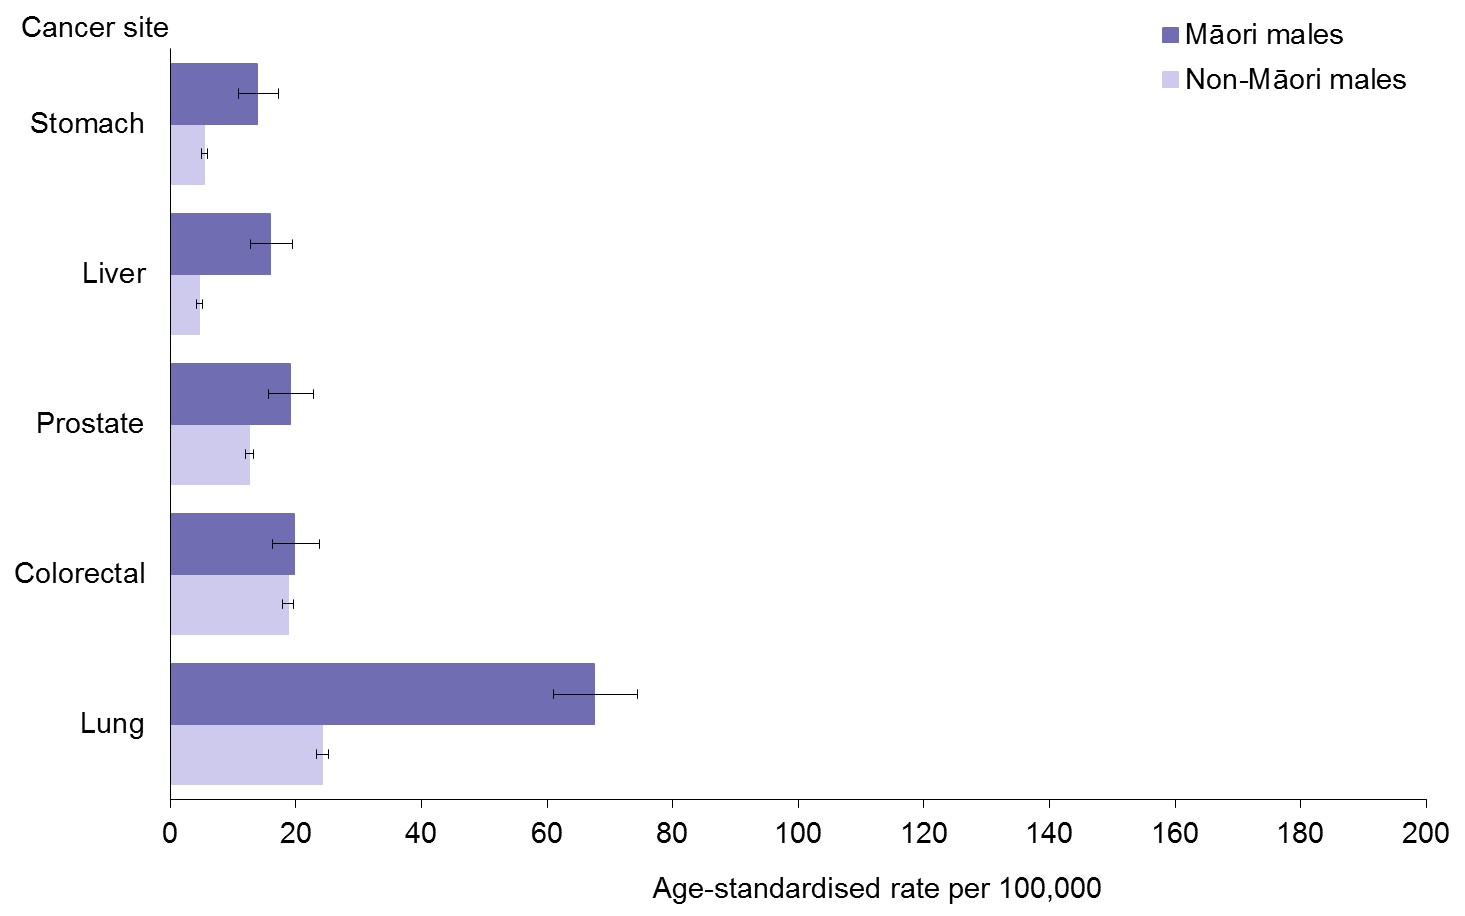 Title: Figure 11: Male cancer mortality rates, by site, 25+ years, Māori and non-Māori, 2010–12